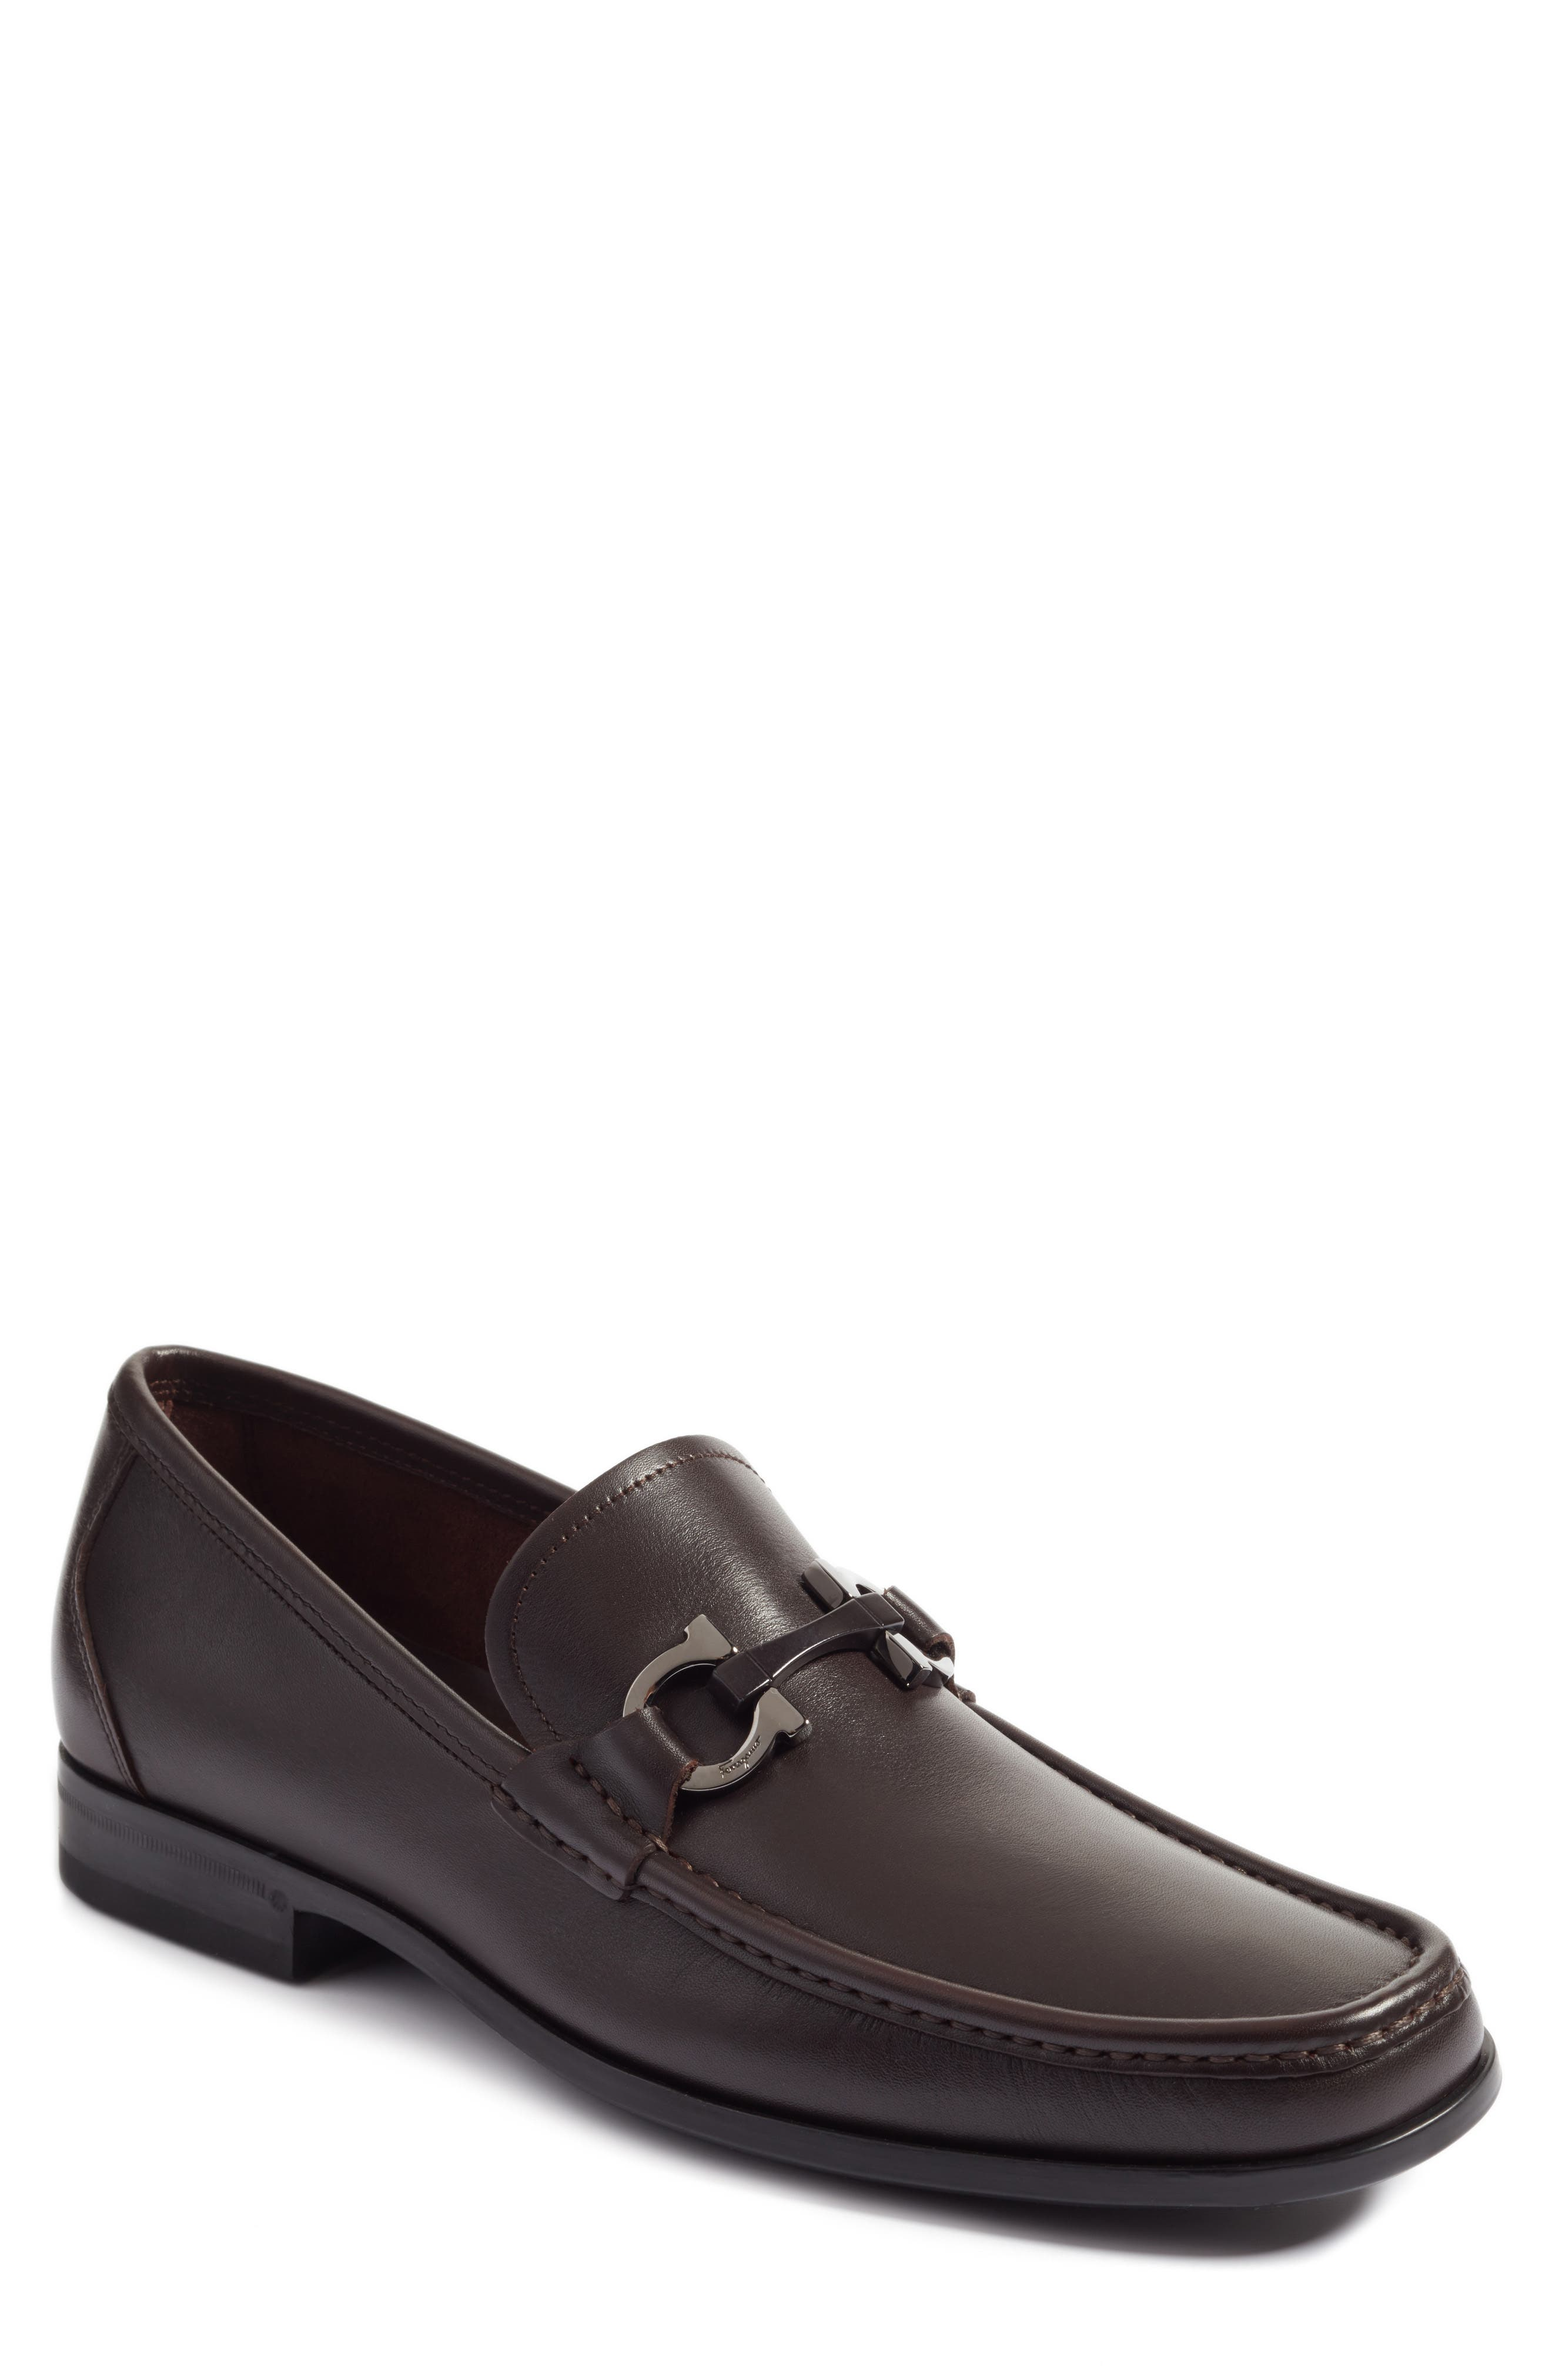 Main Image - Salvatore Ferragamo Grandioso Bit Loafer (Men)